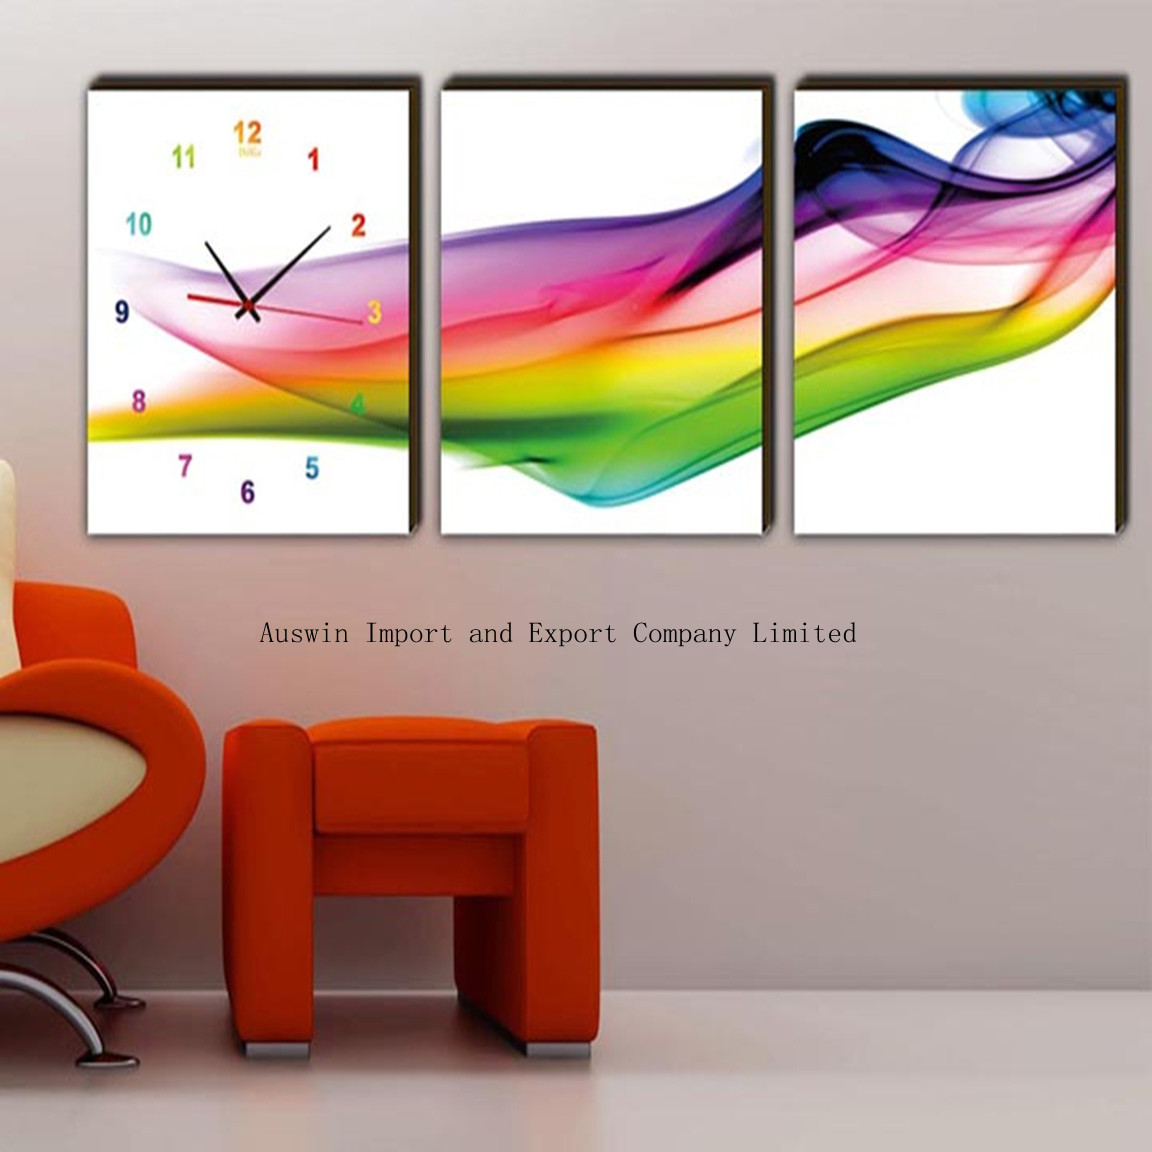 Art Wall Clock Manufacturer in Guangdong China by Auswin Import